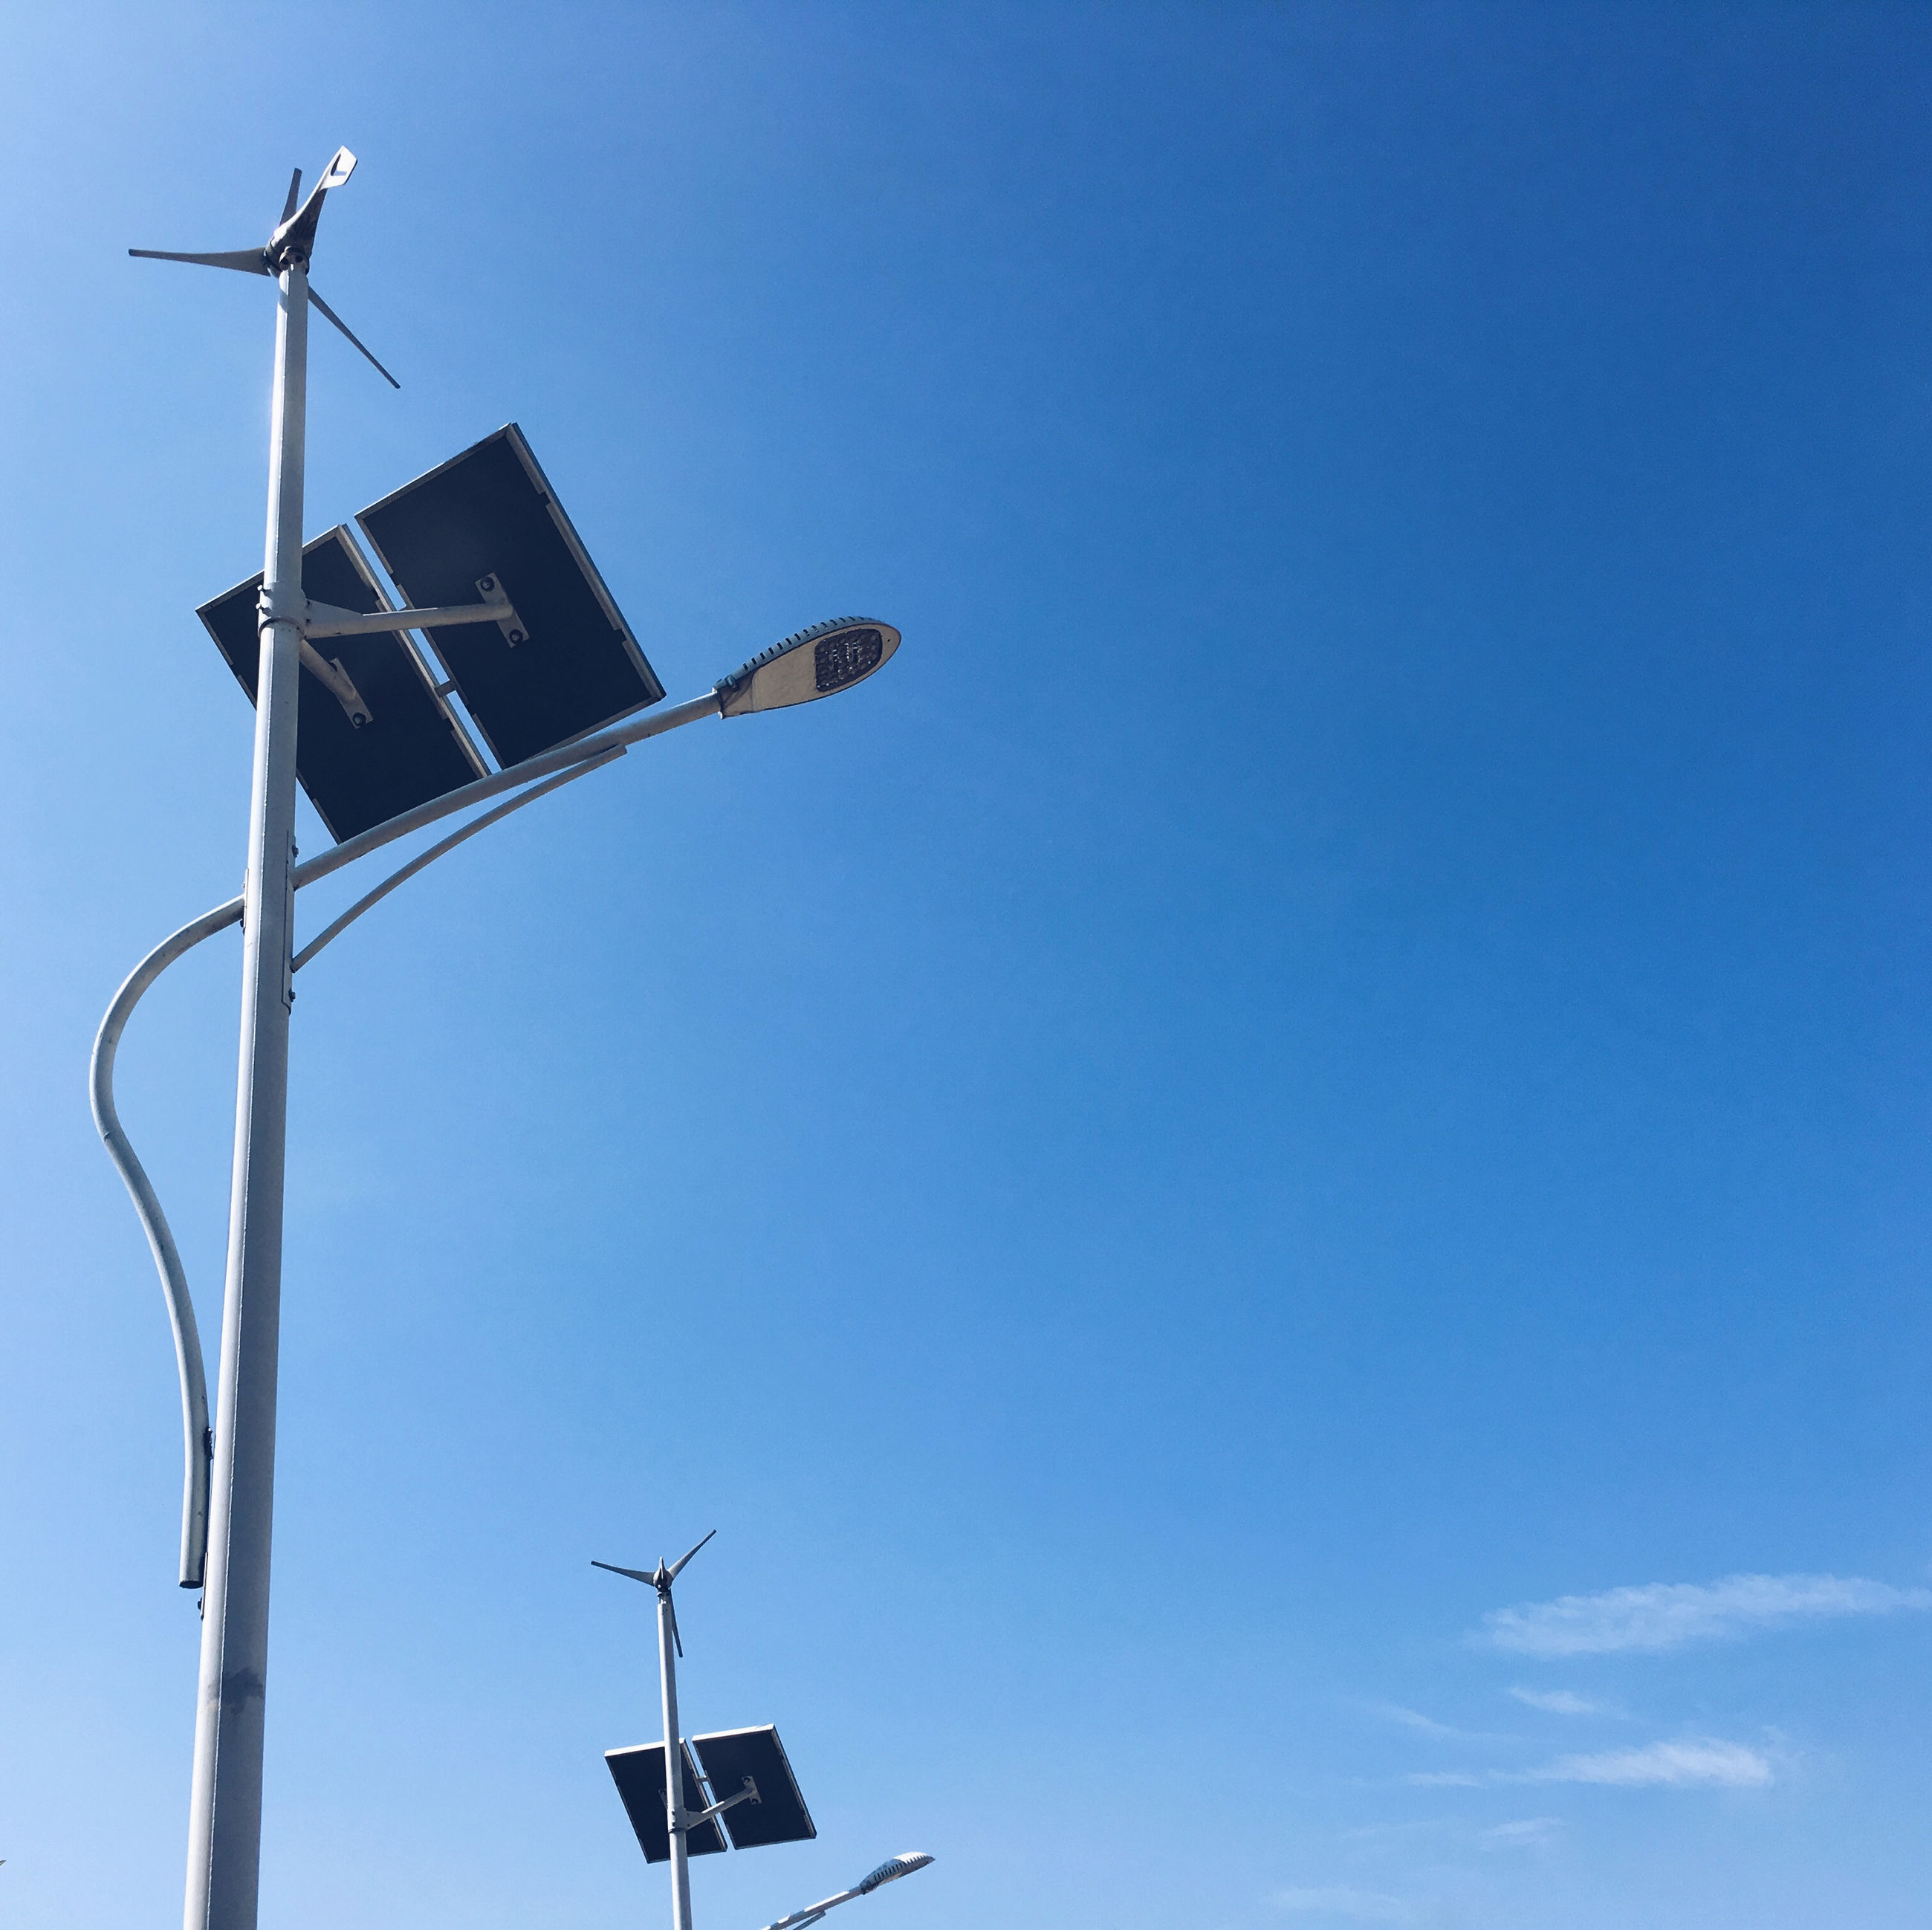 Low angle view of street light by wind turbine against blue sky